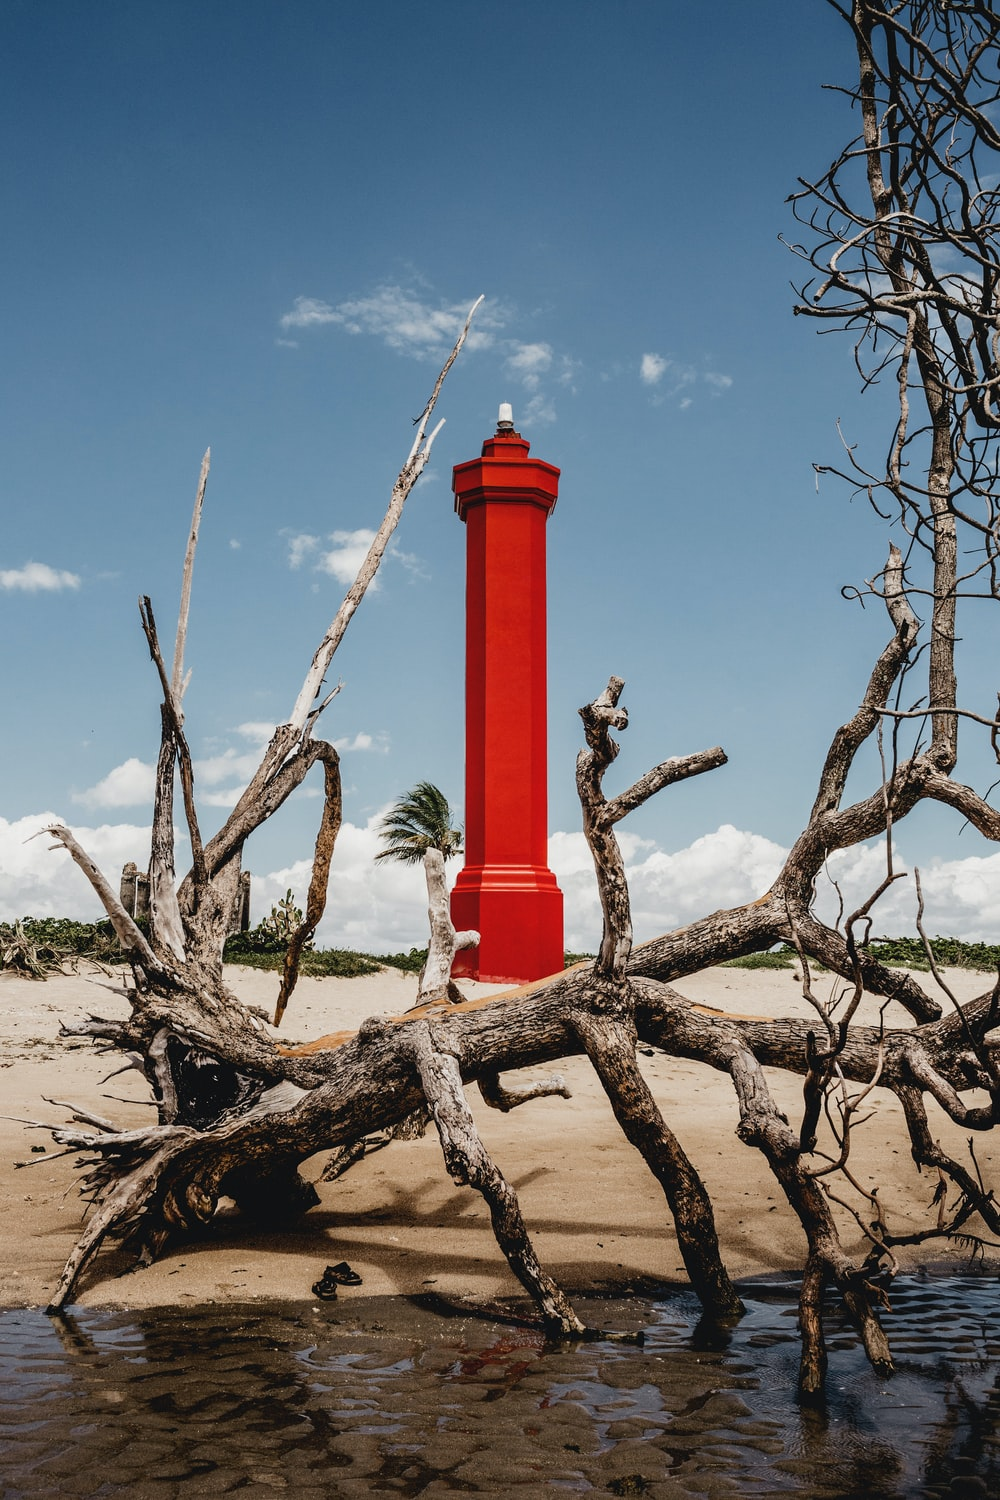 red and white concrete lighthouse under blue sky during daytime